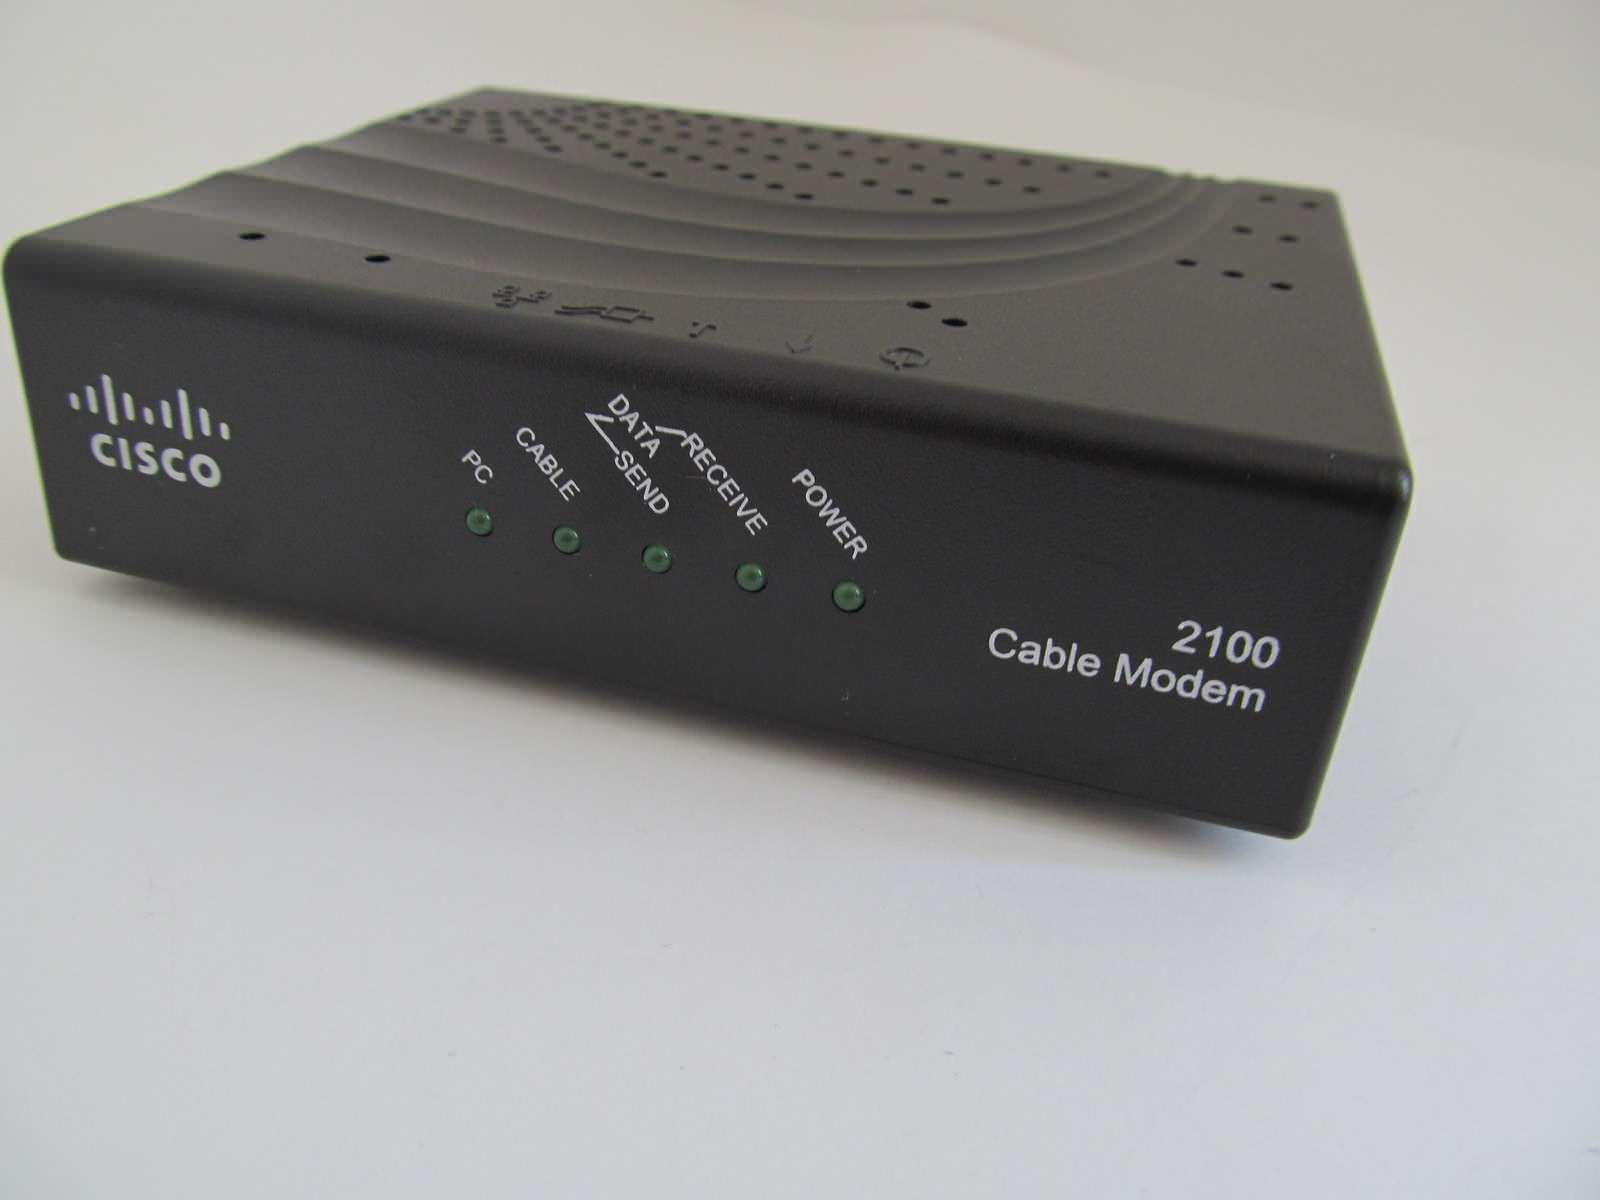 What is the use of usb output on my cisco dpq2160 modem